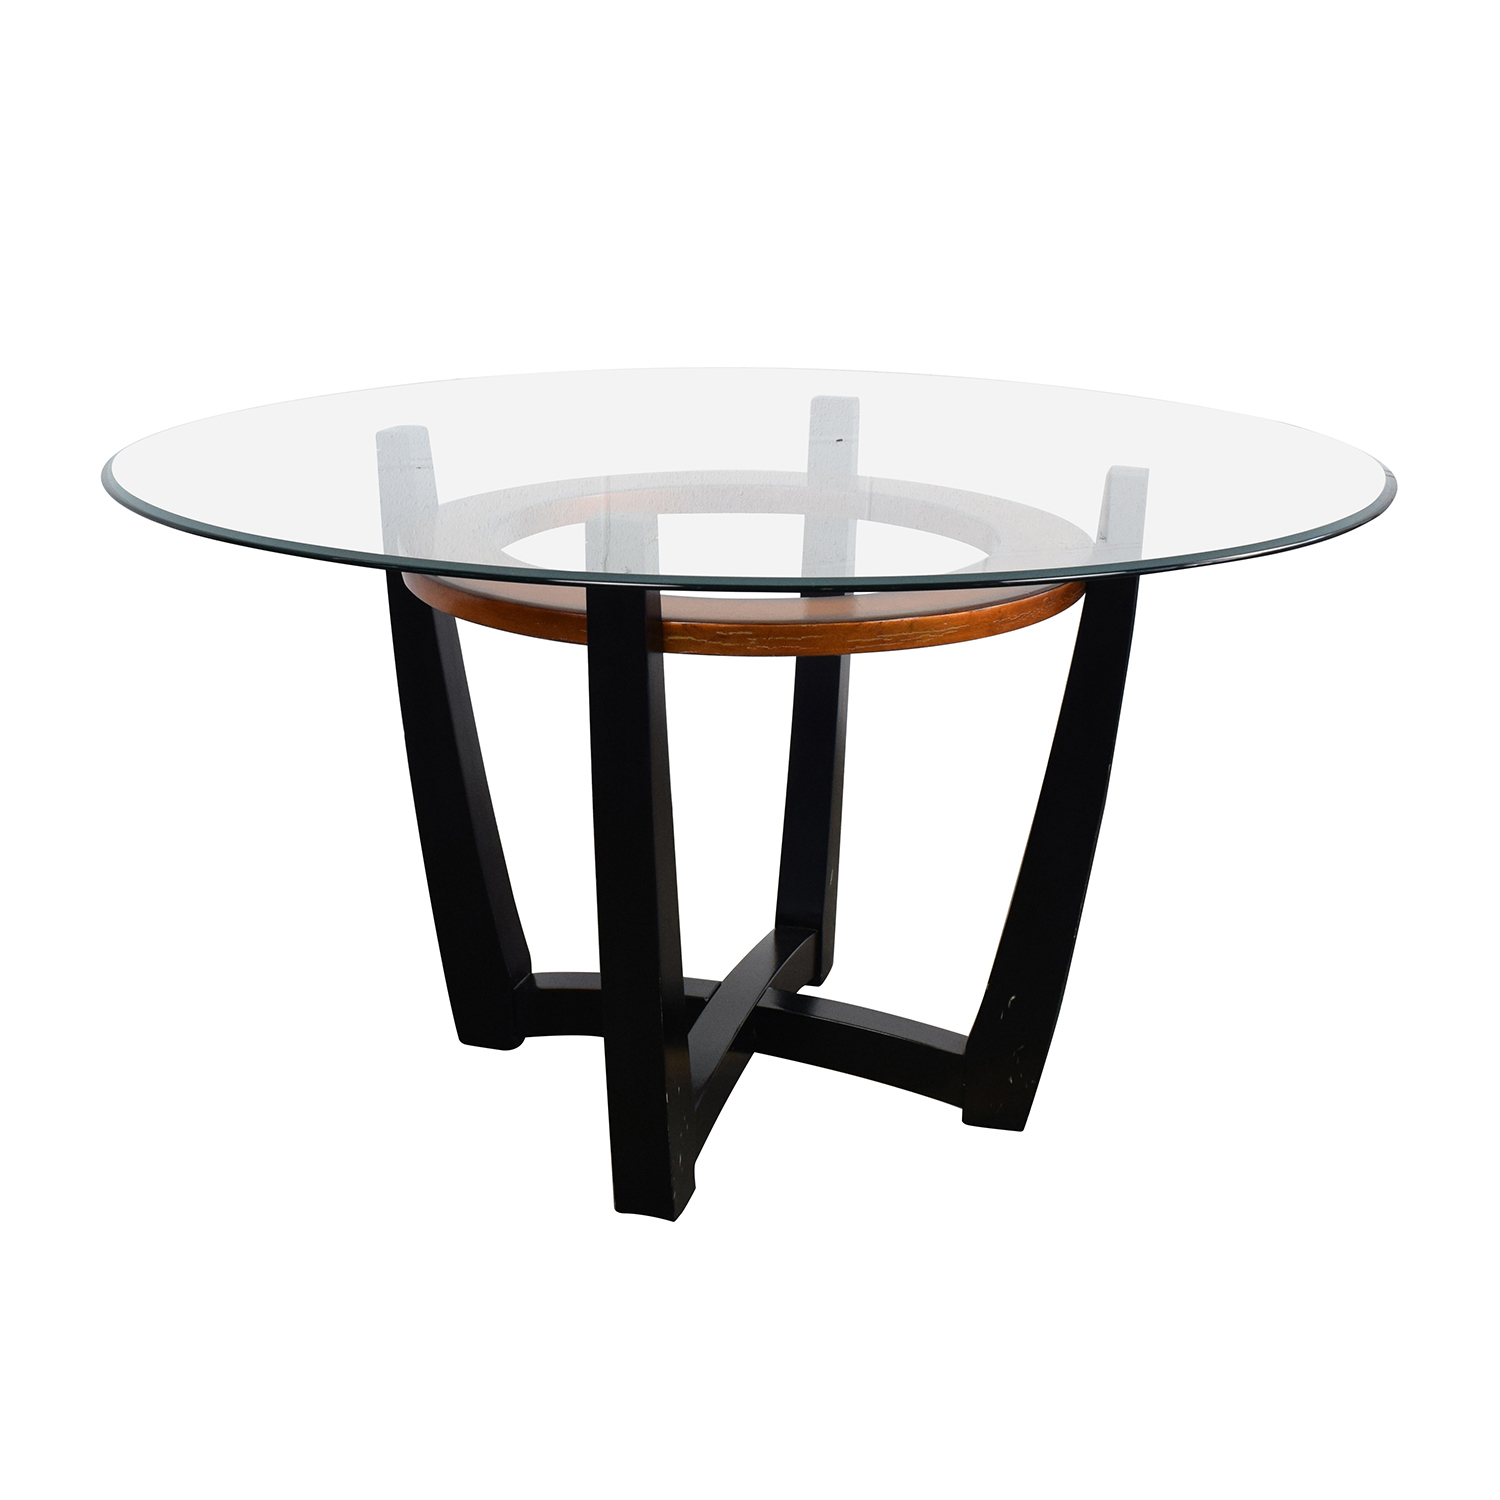 88 off macy 39 s macy 39 s elation round glass dining table for Glass dining table